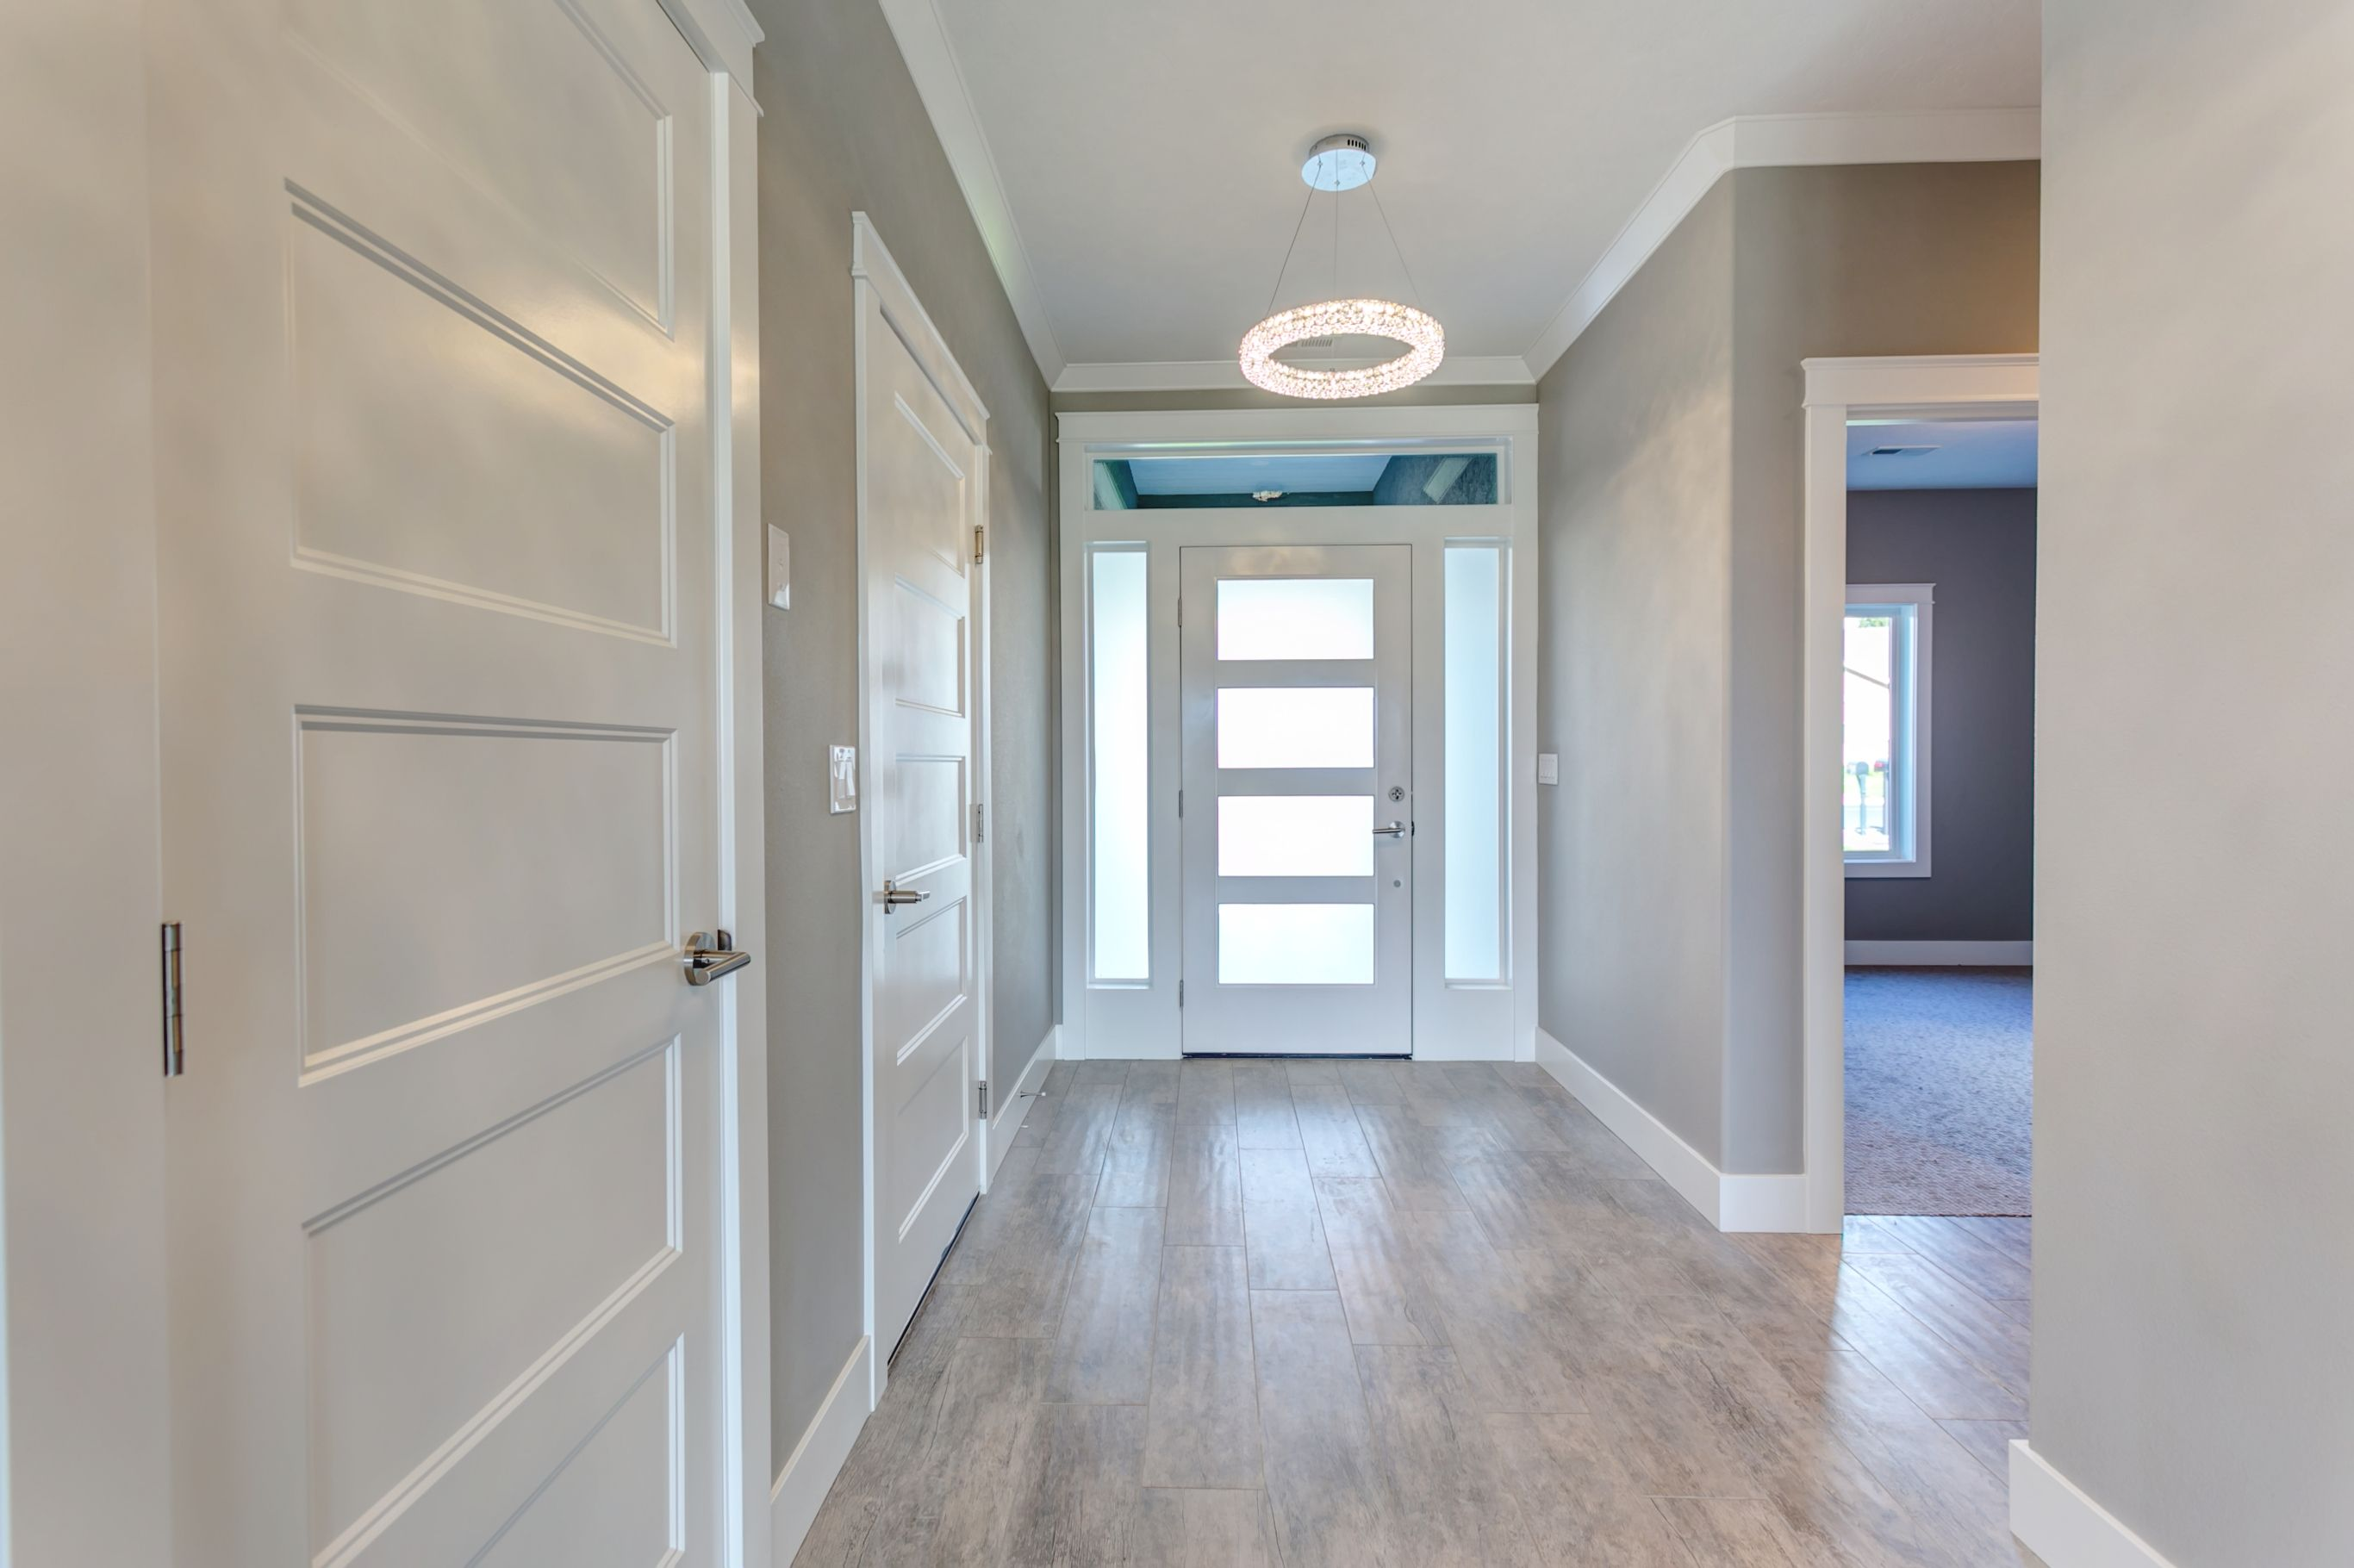 Wall color ozark shadows ac 26 from benjamin moore trim color high reflective white sw 7757 from sherwin williams